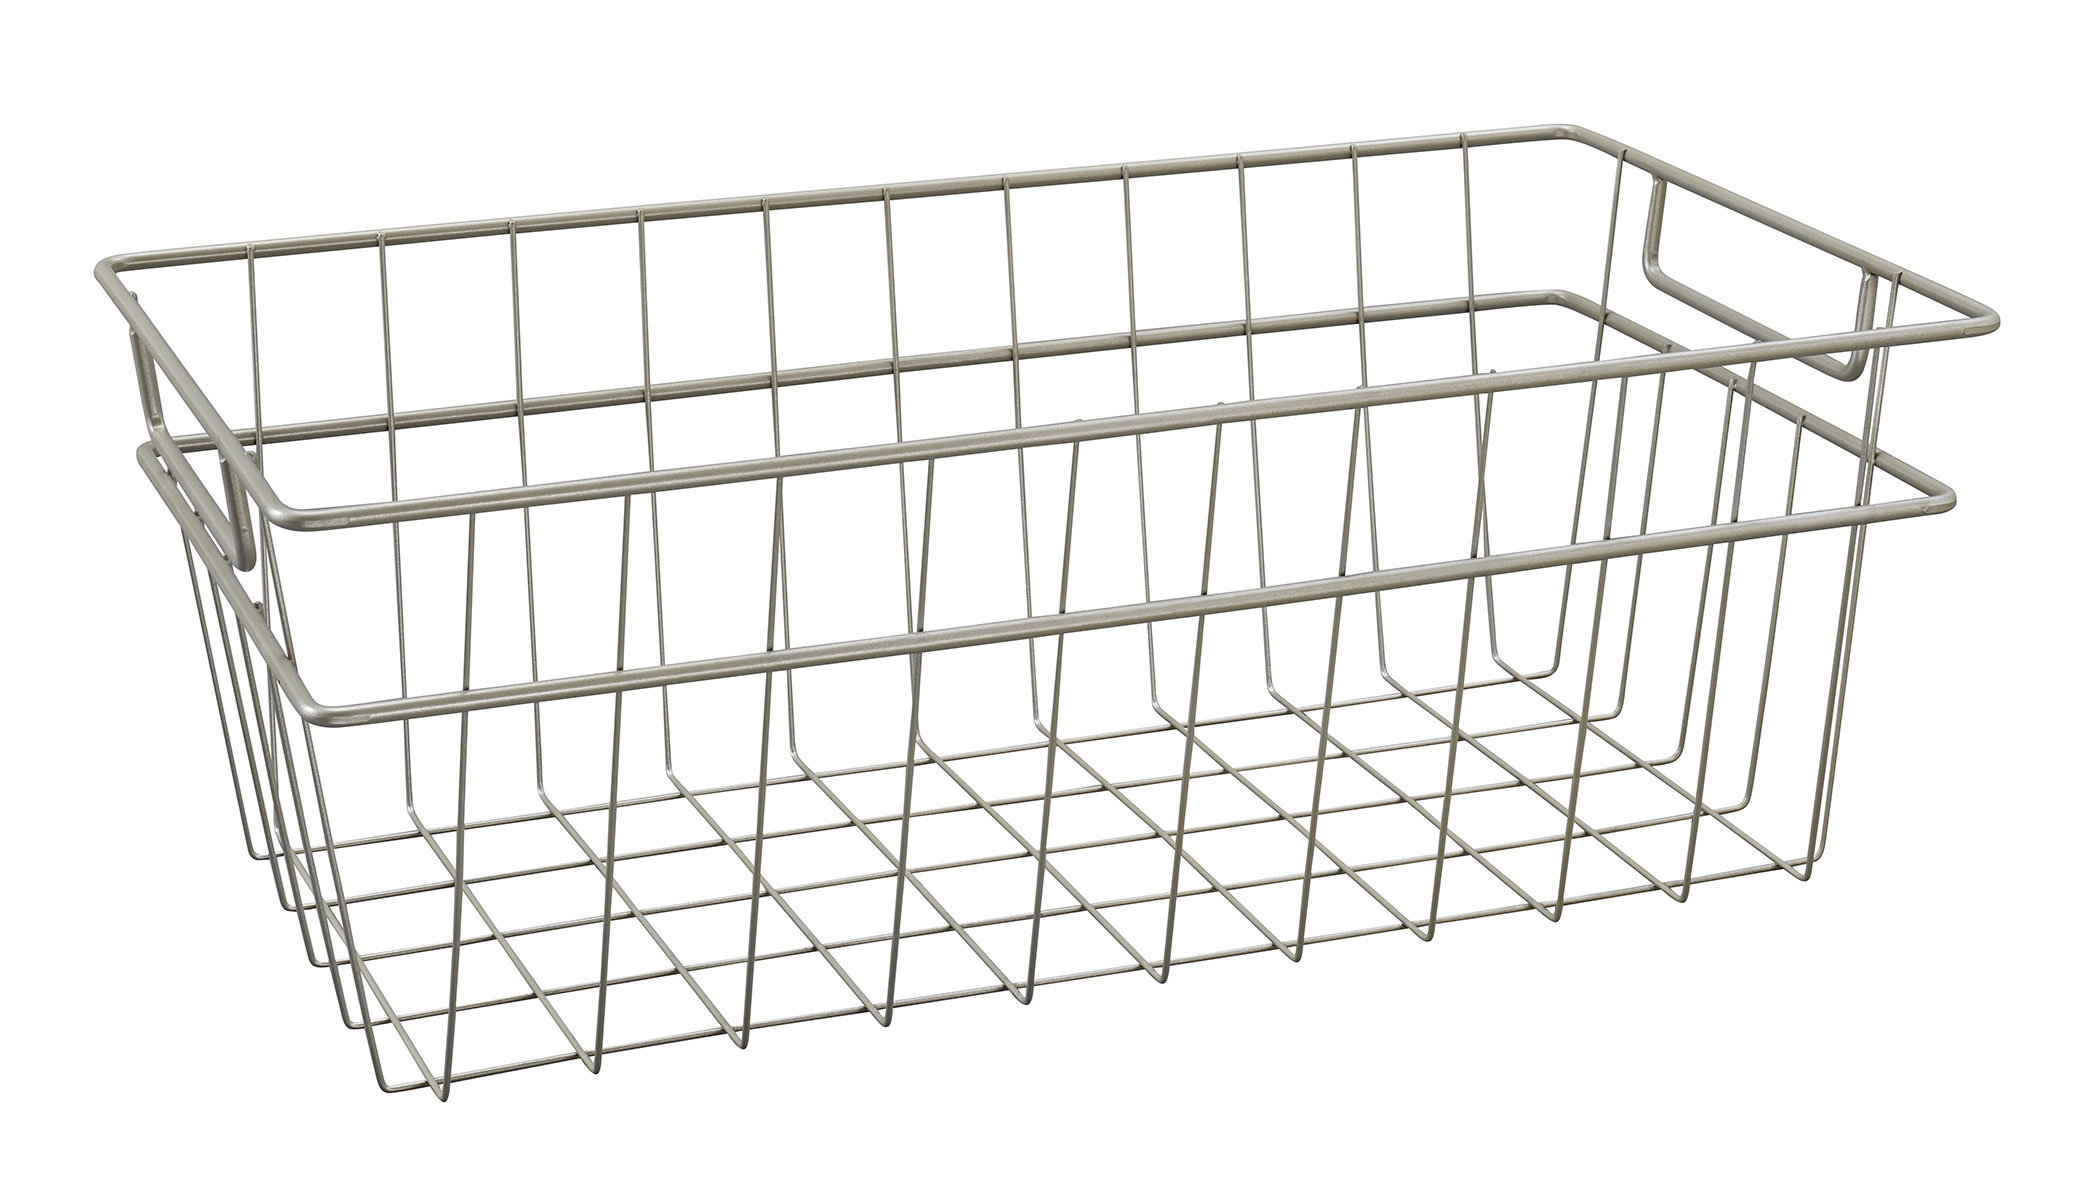 Shop for large wire mesh basket online at Target. Free shipping on purchases over $35 and save 5% every day with your Target REDcard.